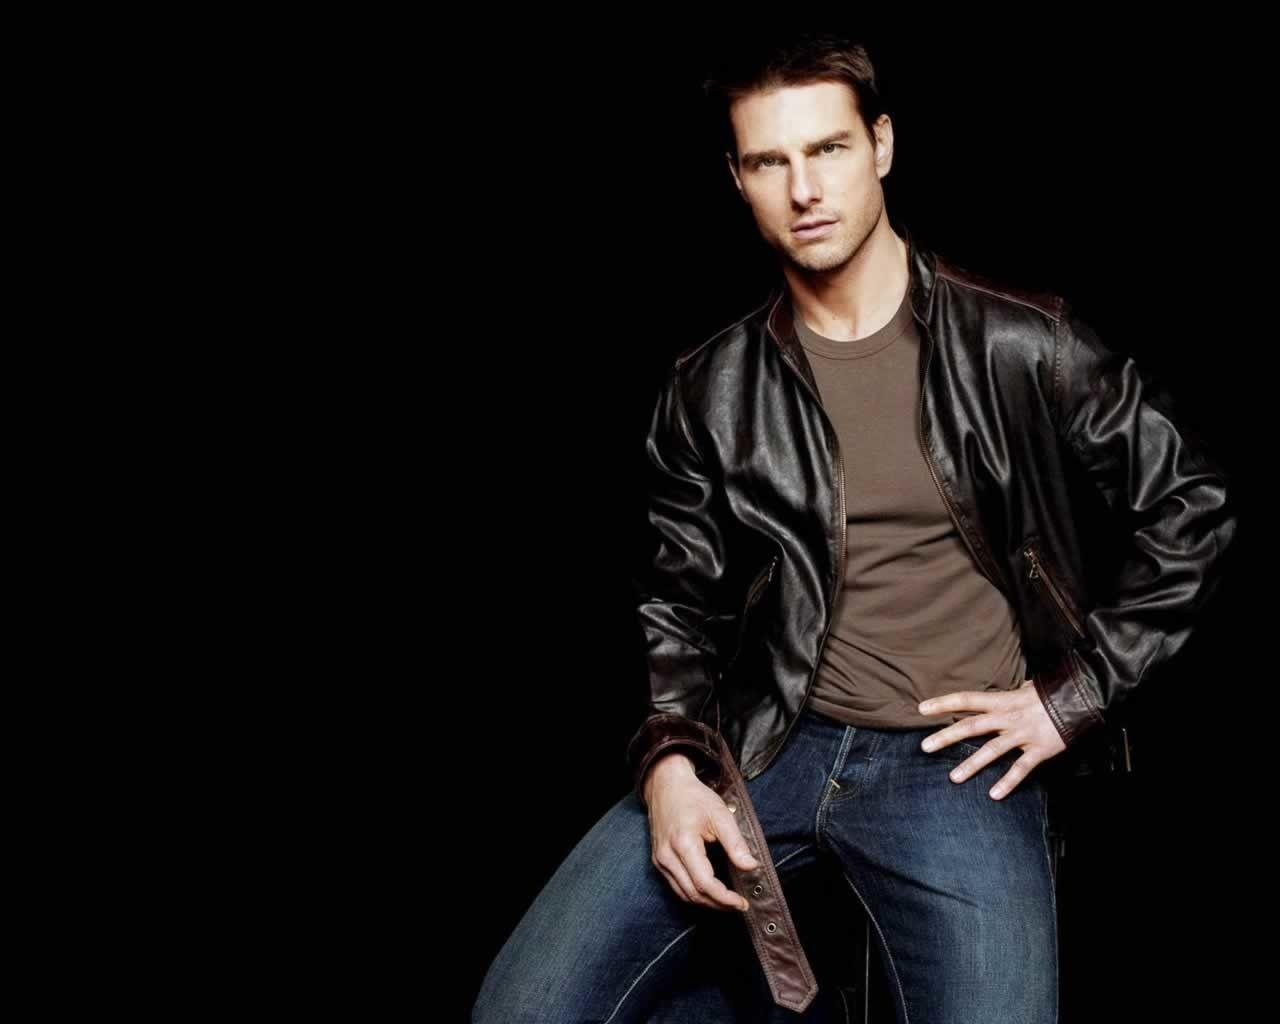 89 Tom Cruise HD Wallpapers